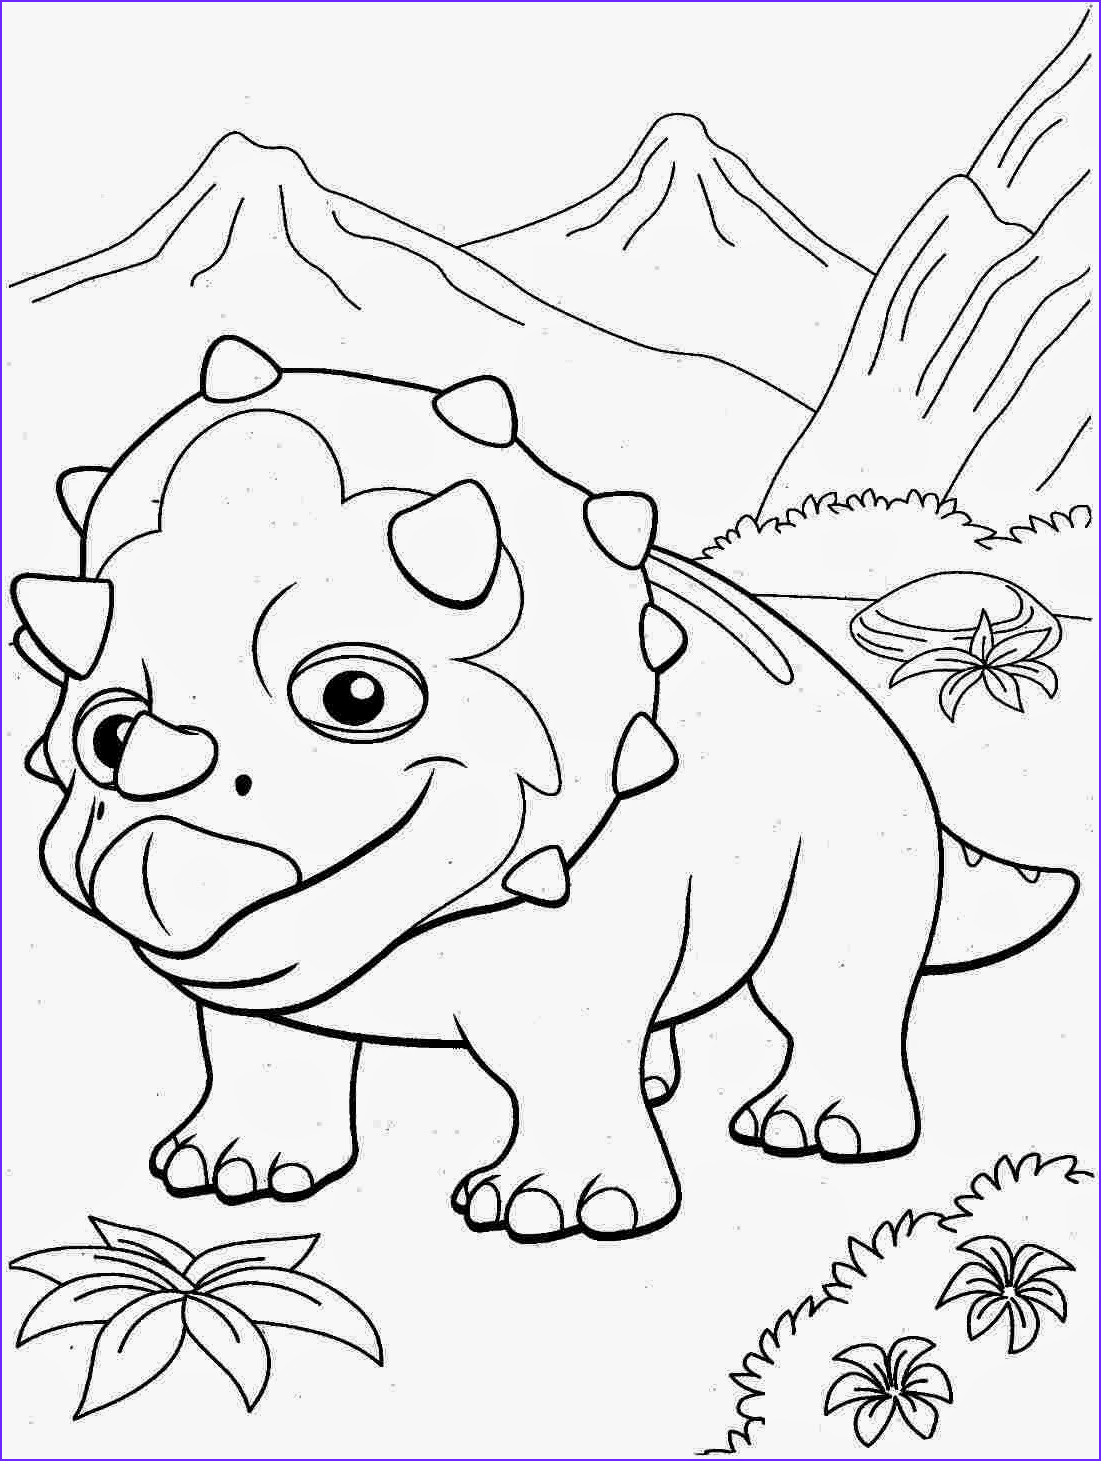 Coloring Pages Dinosaurs Inspirational Photos Coloring Pages Dinosaur Free Printable Coloring Pages